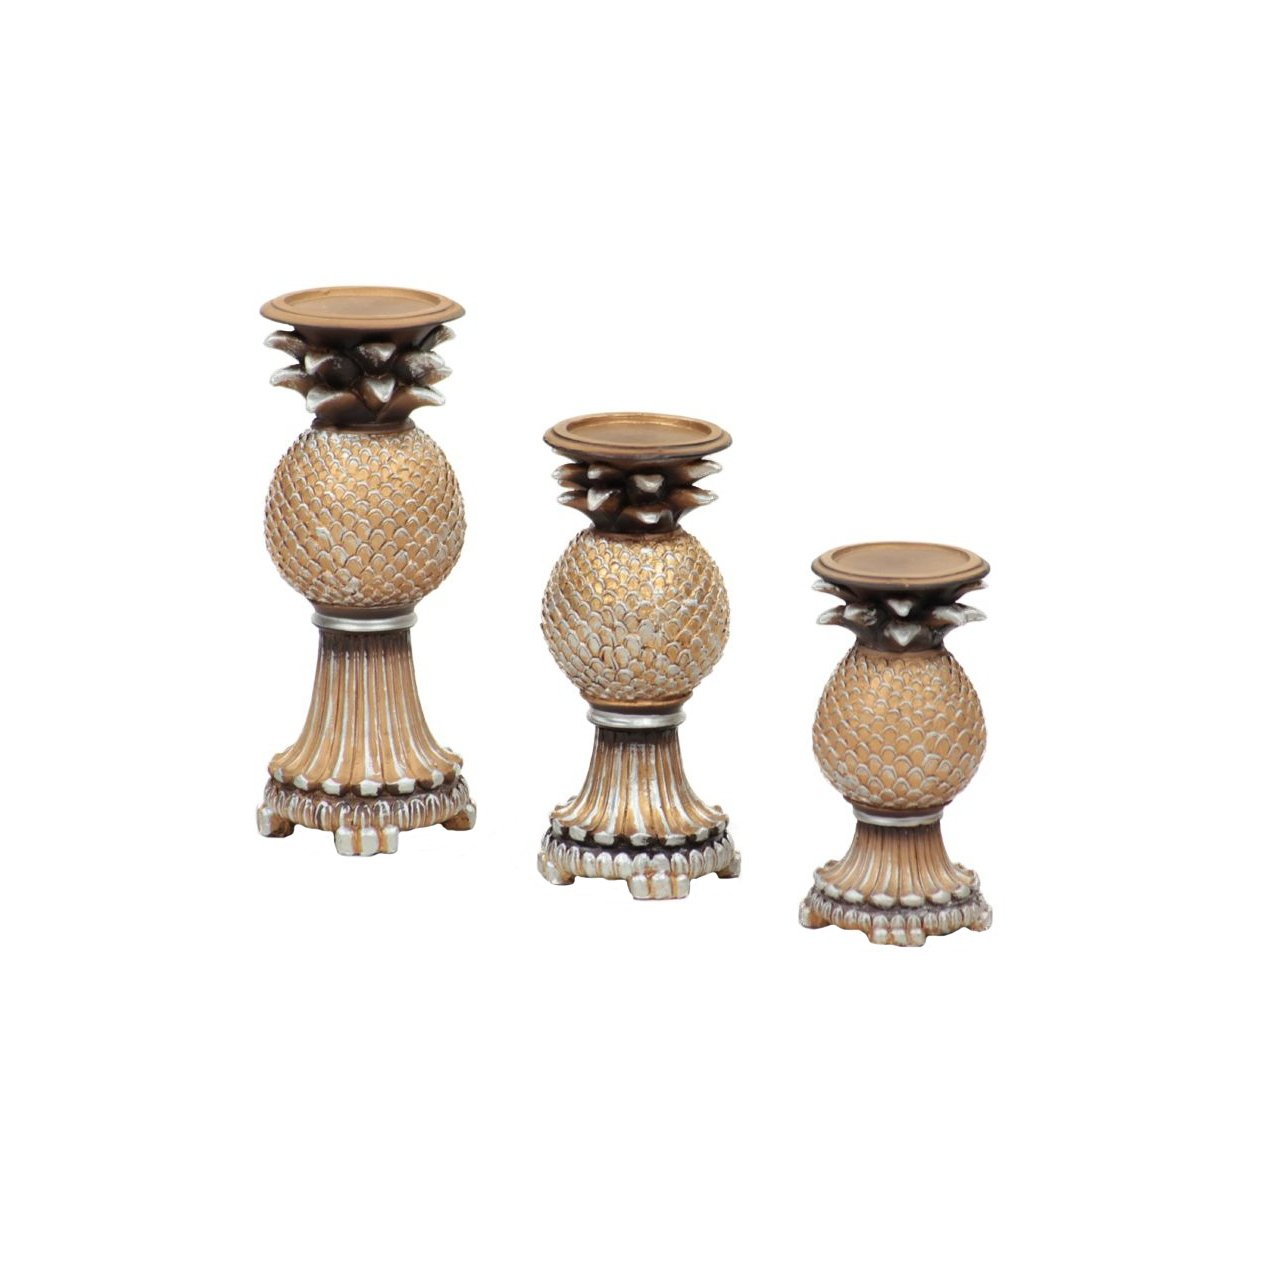 f7d52293c0 Amazon.com: Essentials Décor Entrada Collection Gold 3-Piece Set Polyresin  Candle Holder: Home & Kitchen